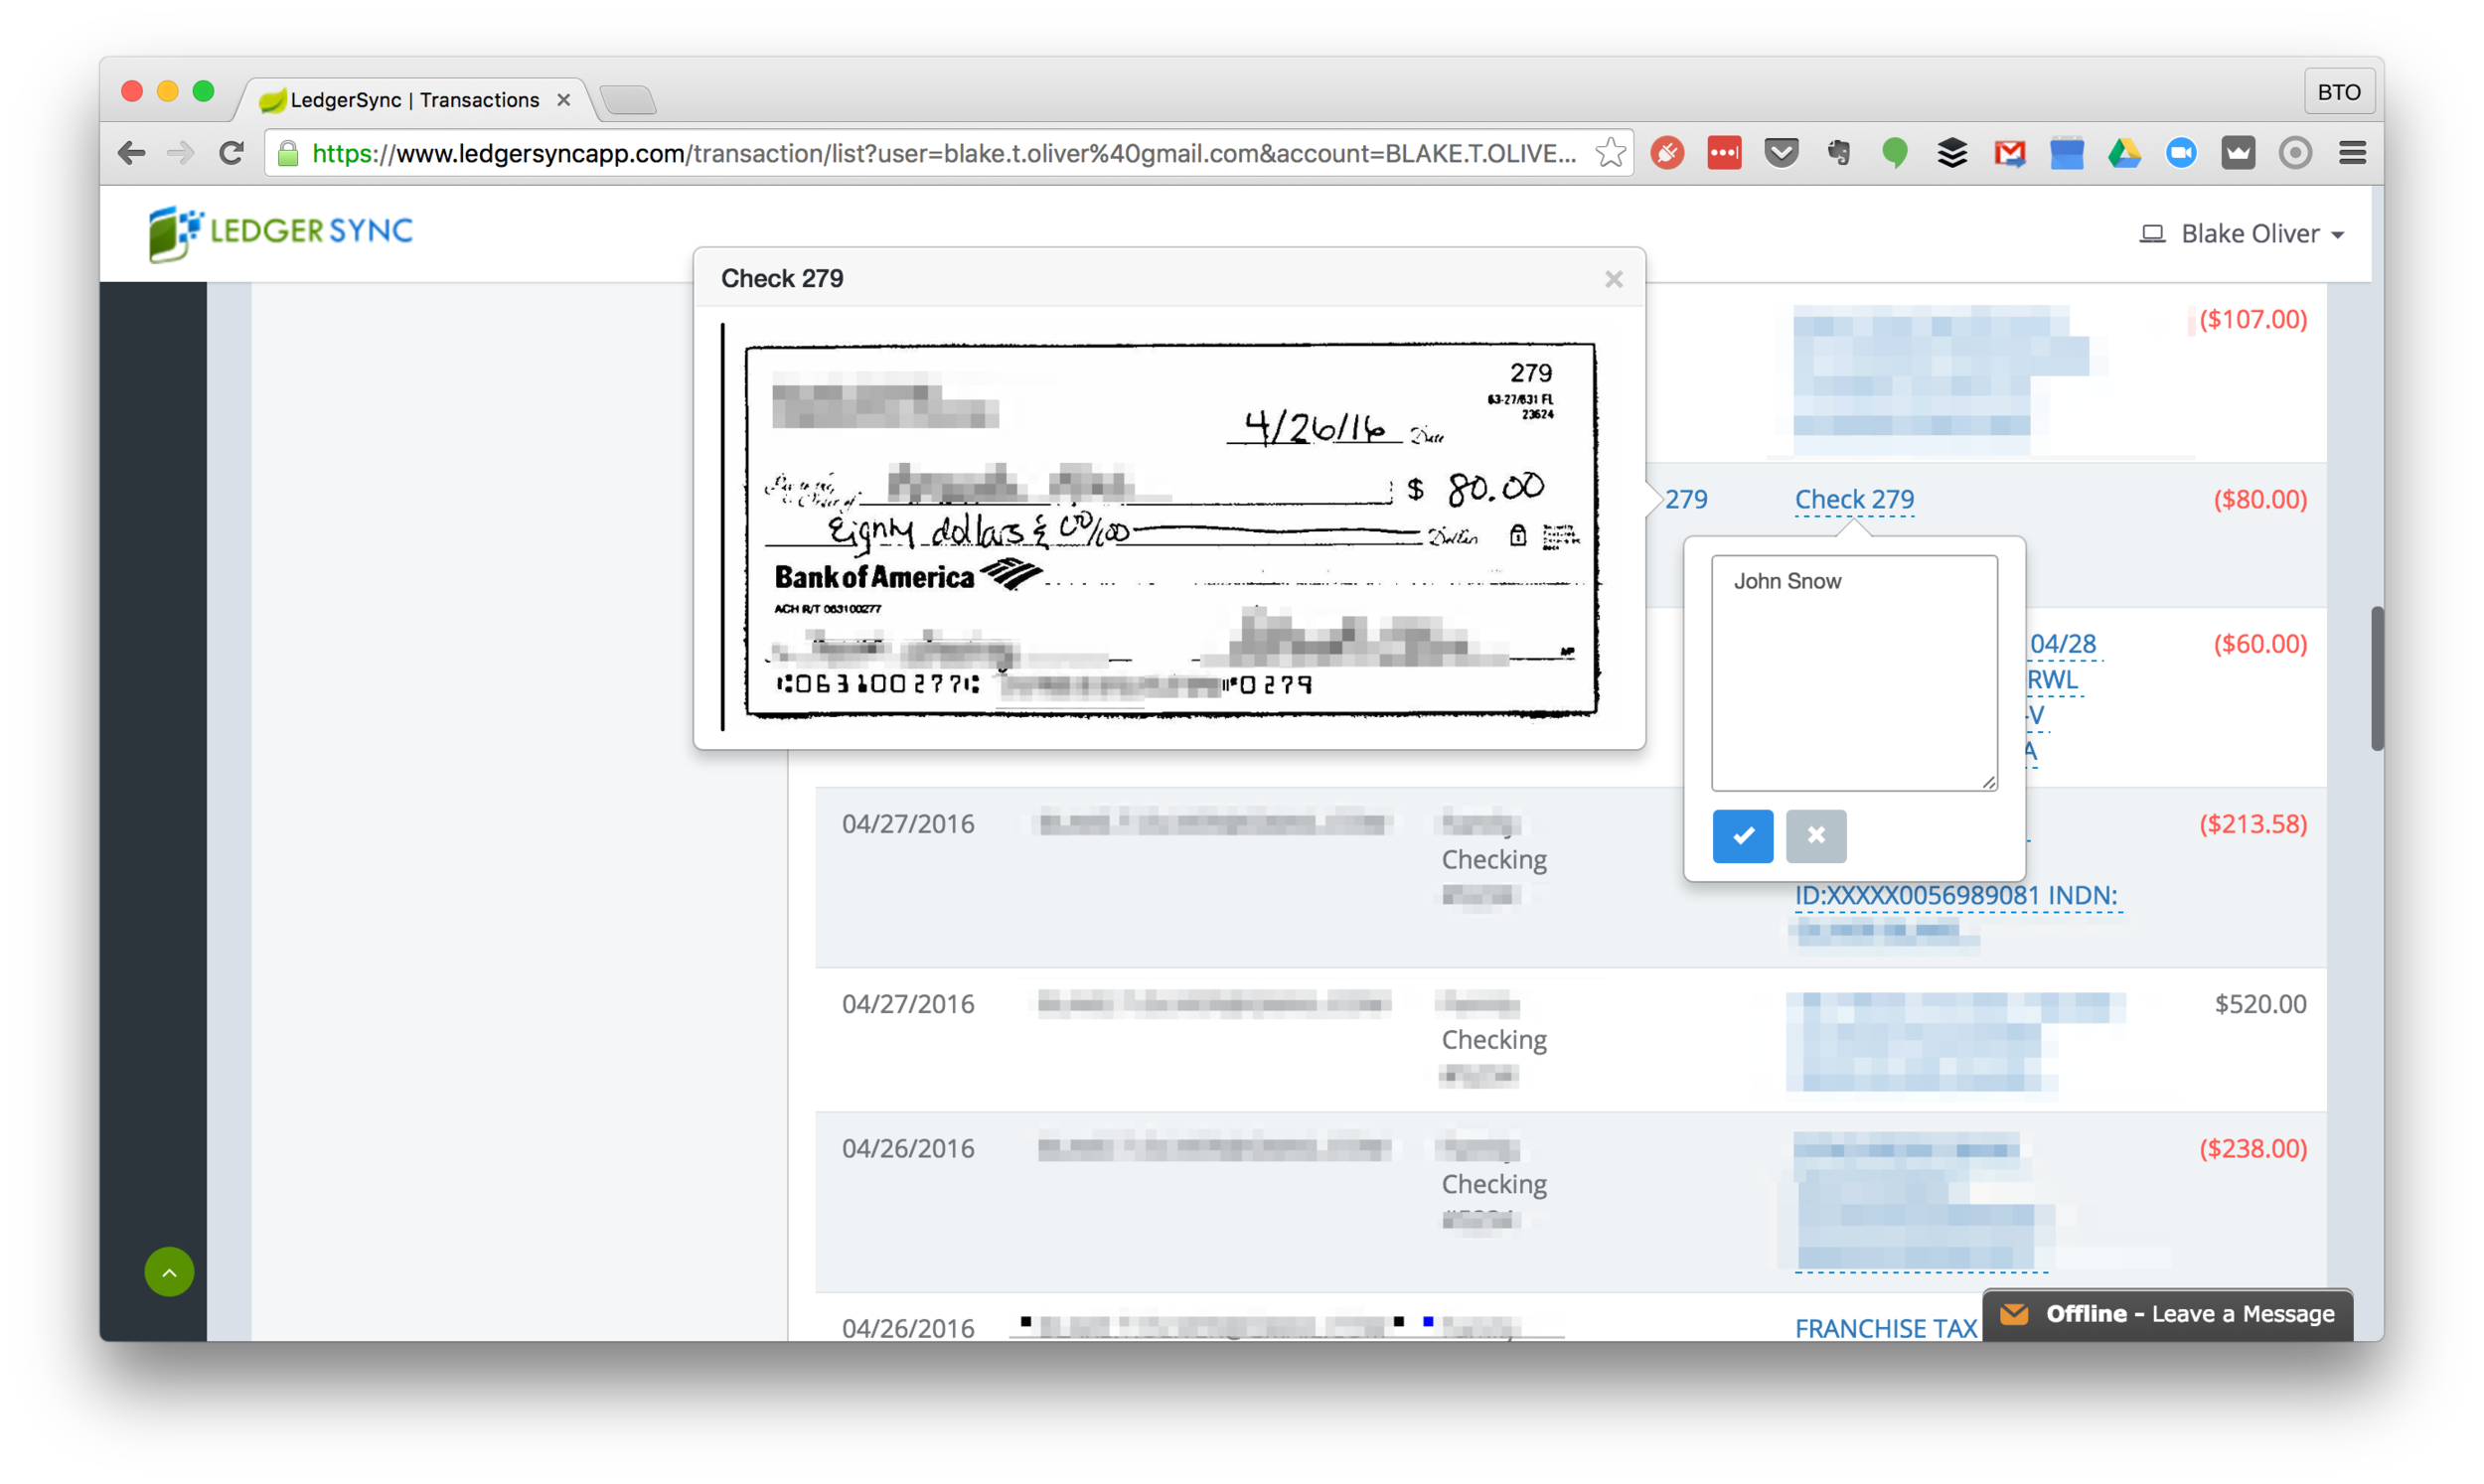 An example of a check image imported automatically by LedgerSync from online banking